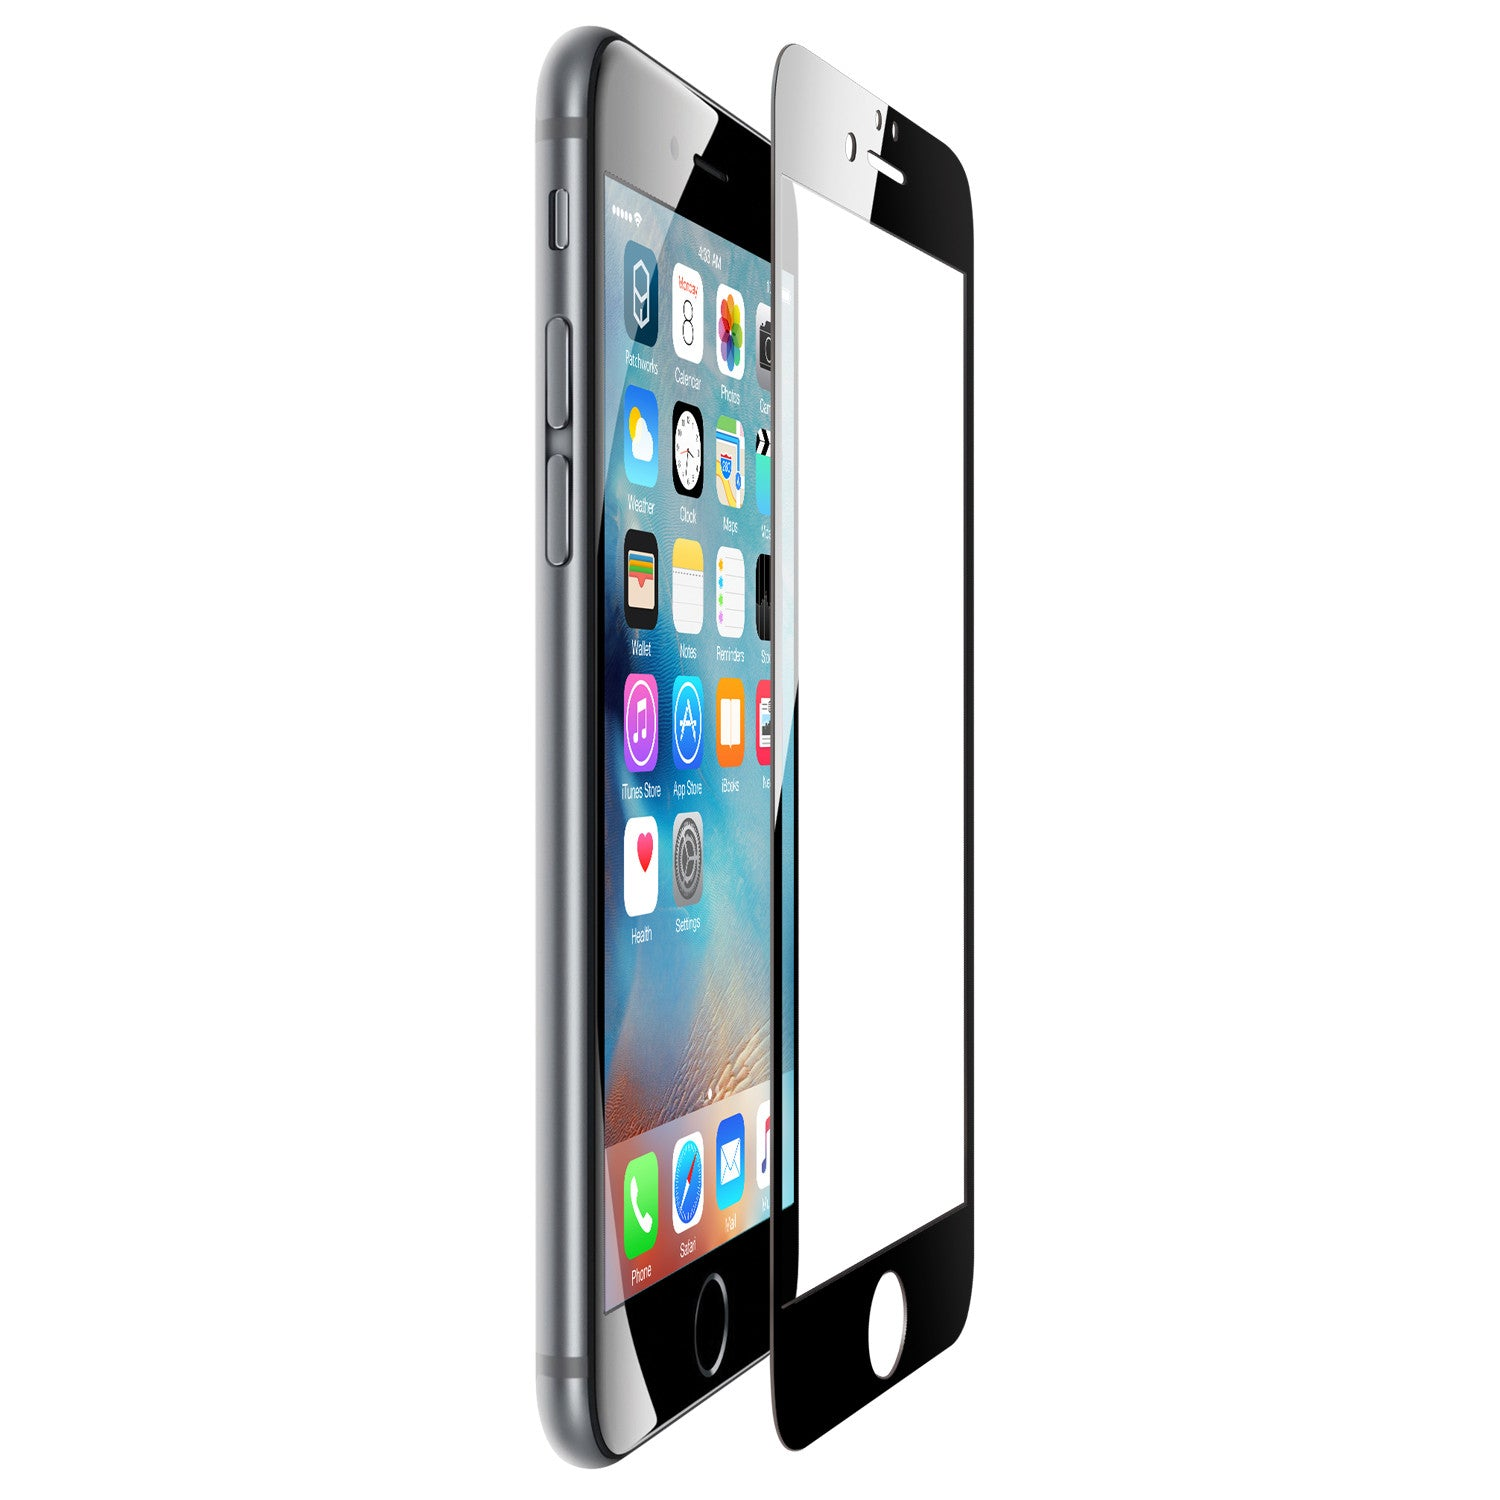 iPhone 6s Plus / 6 Plus Glass Screen Protector ITG FULL COVER - Patchworks Global Inc  - 7